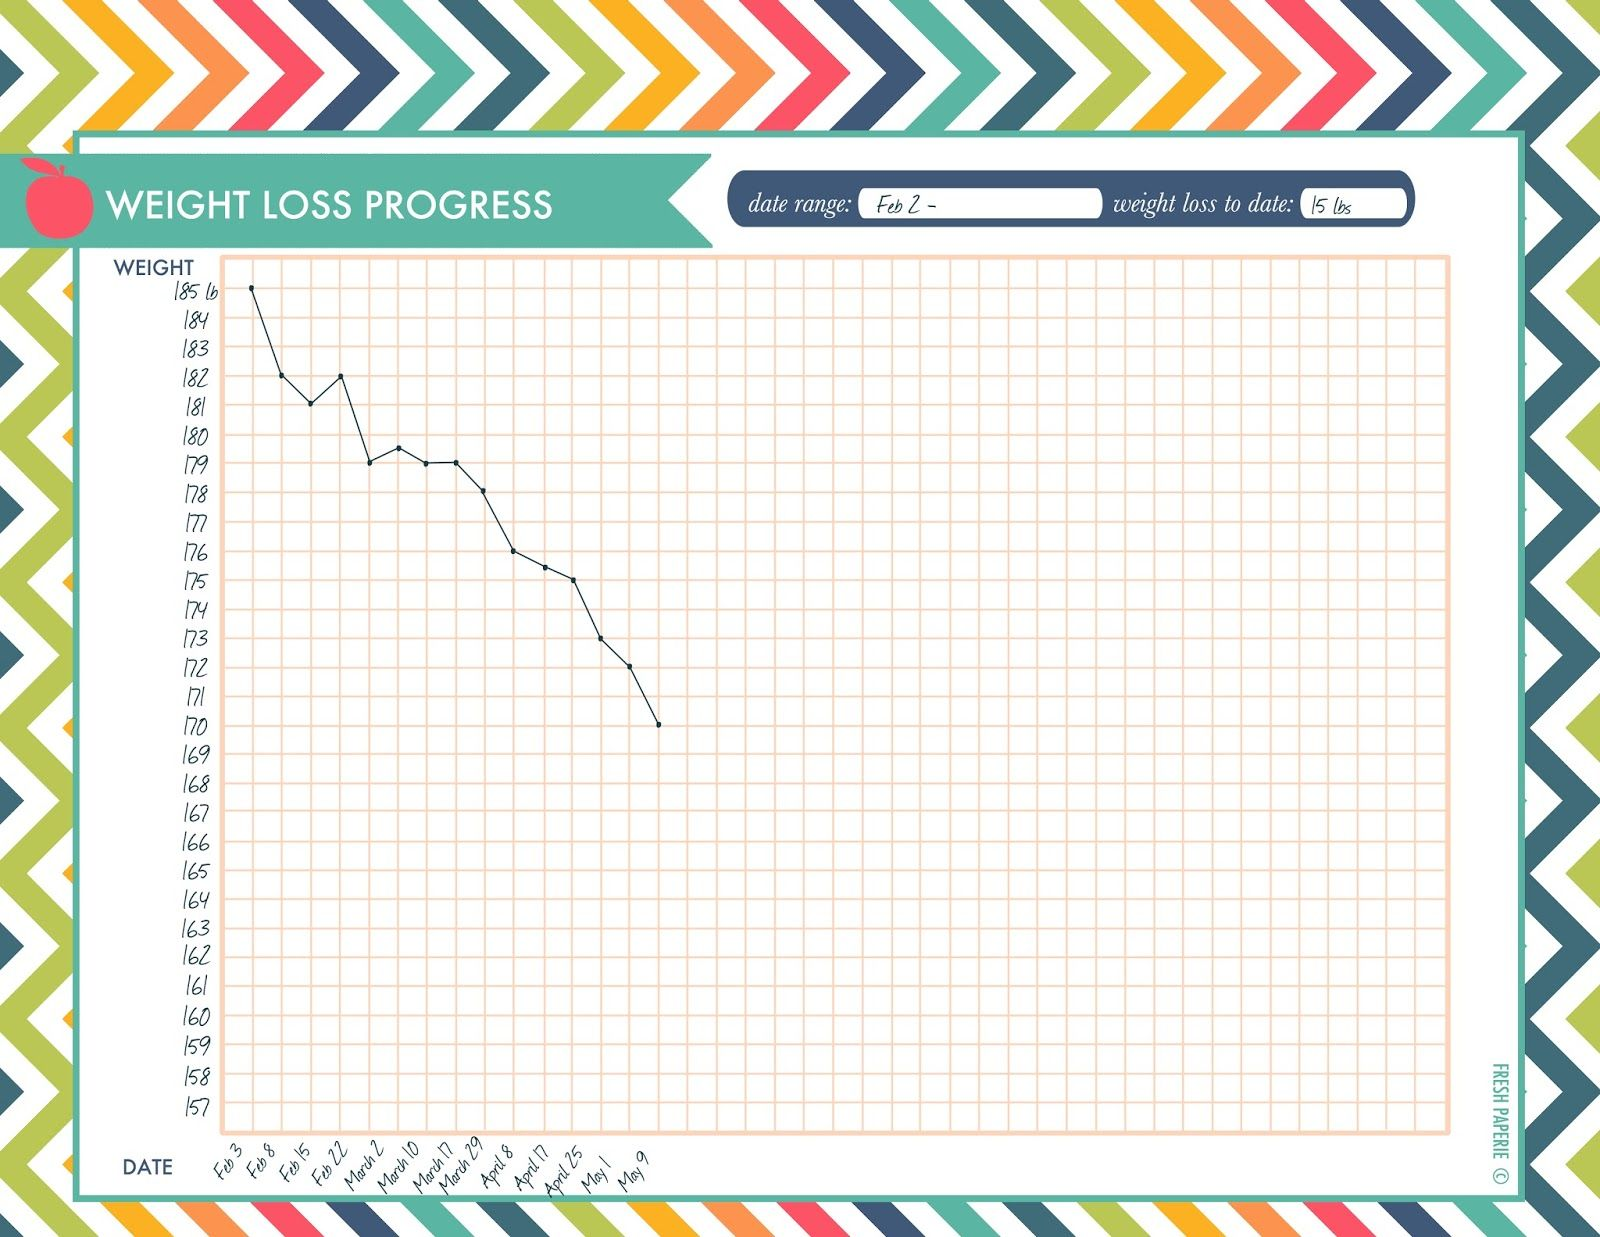 Weight loss progress chart printable download thanks for pinning my printables visit me at freshpaperie to sign up newsletter and receive free also rh pinterest